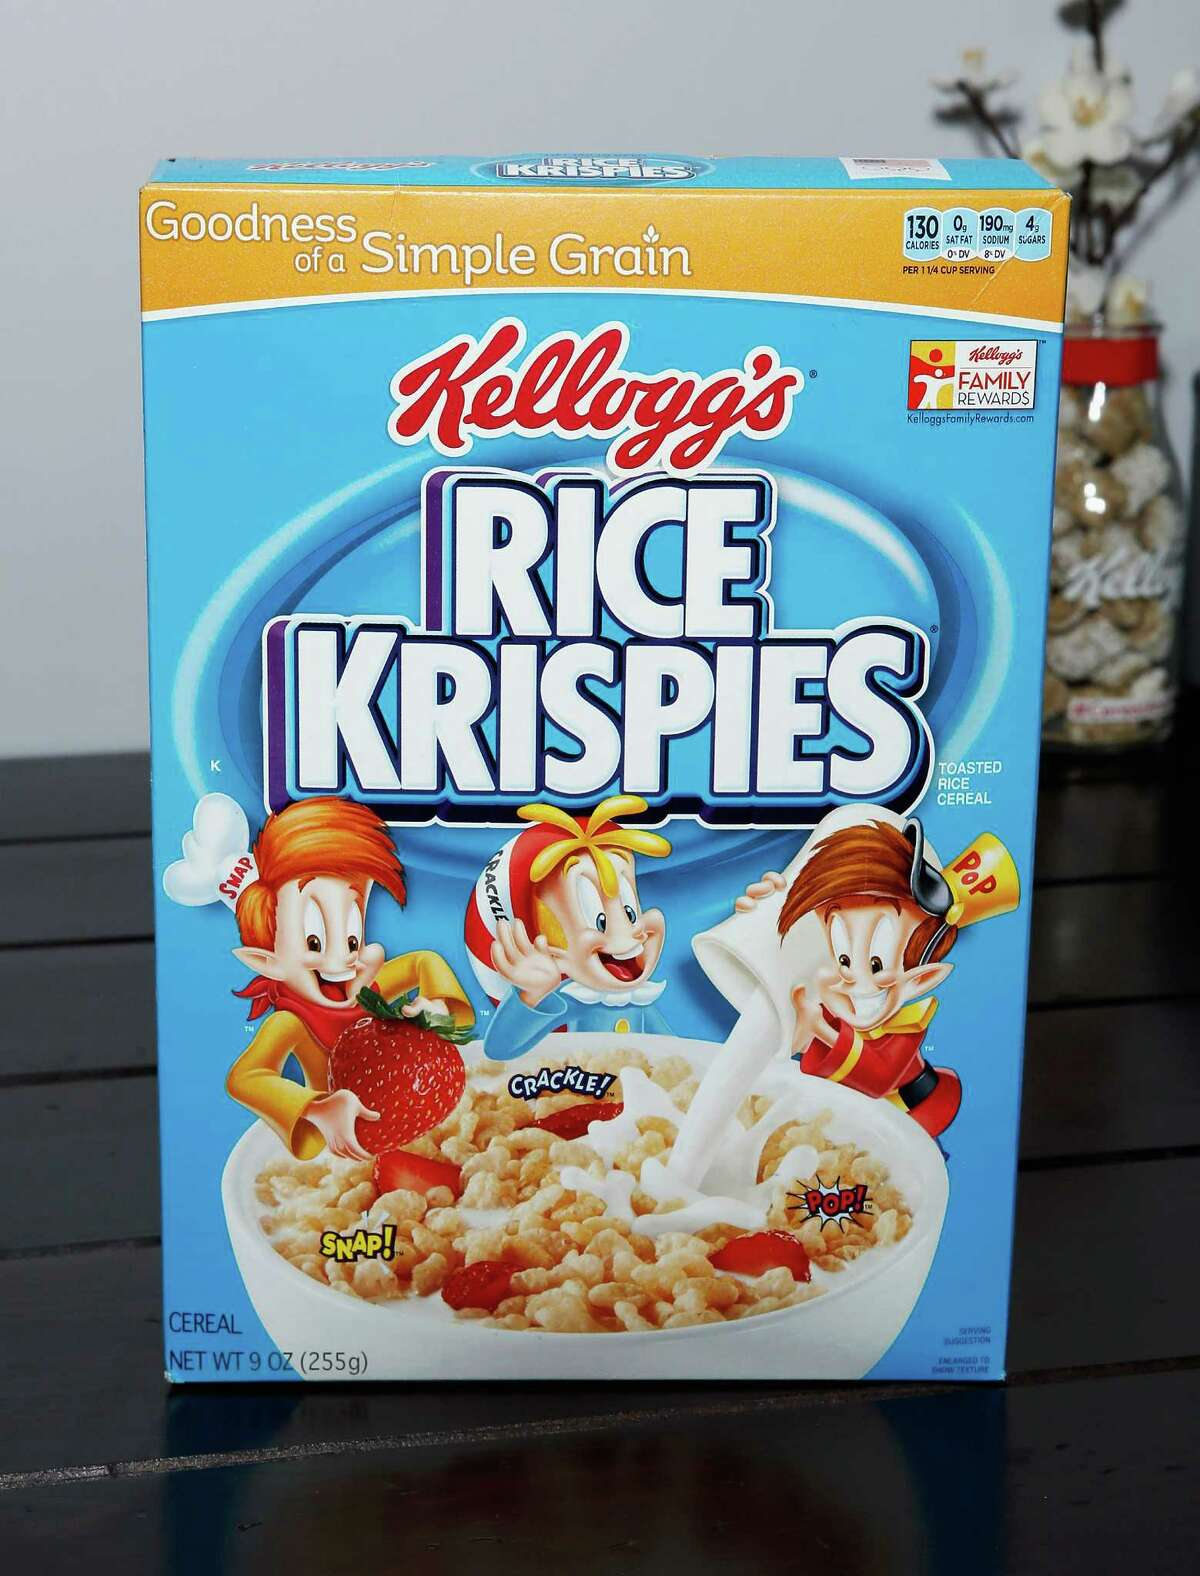 2. I am a huge cereal fan. We always have at least 5-10 boxes in our home at all times. My favorite is Rice Krispies.